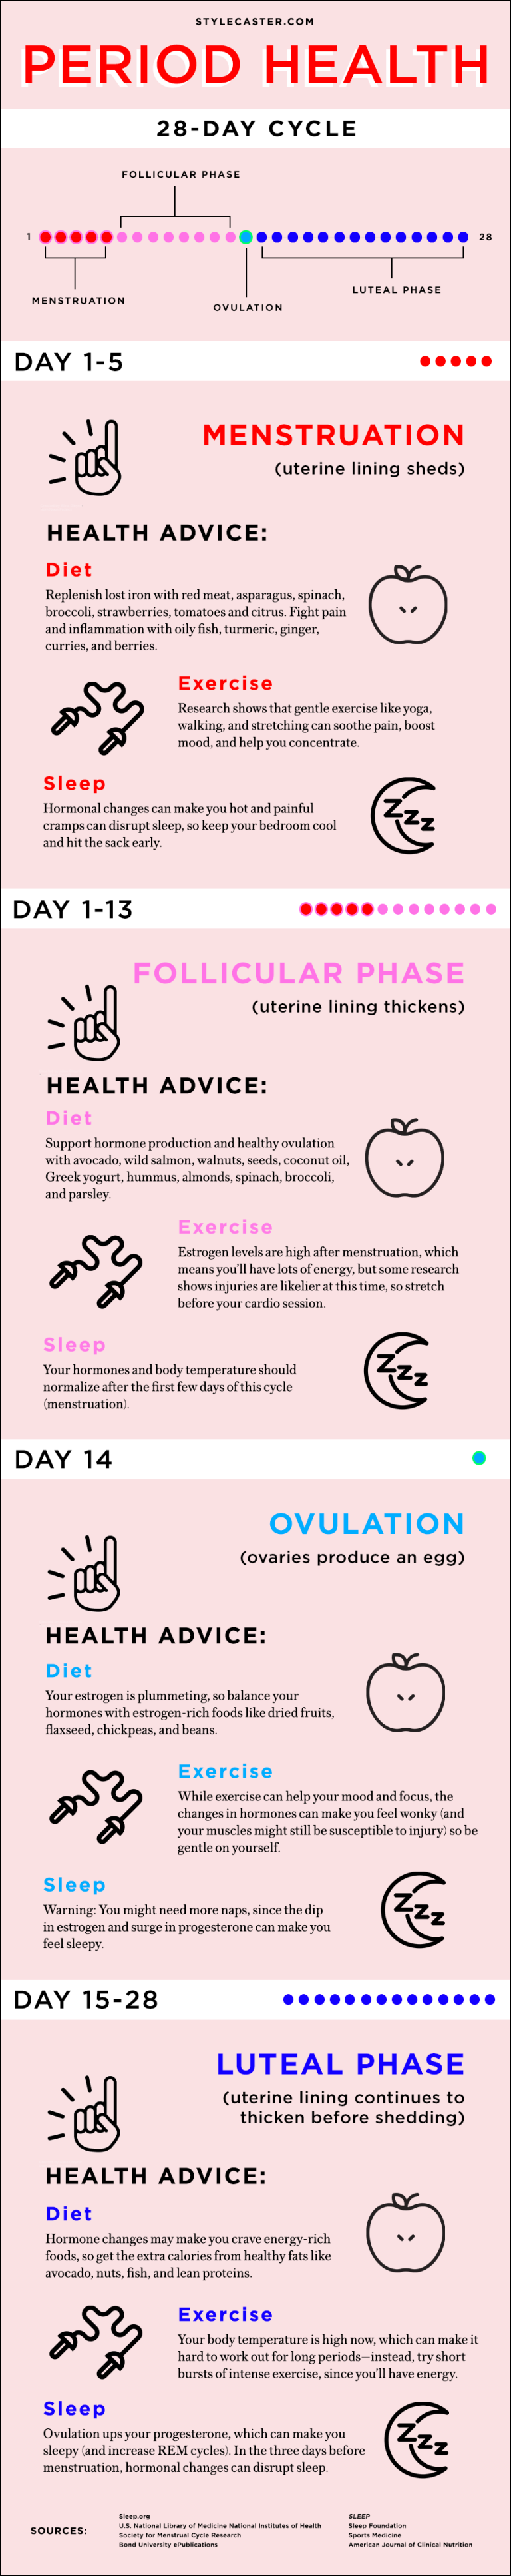 Health Advice for Every Phase of Your Menstrual Cycle